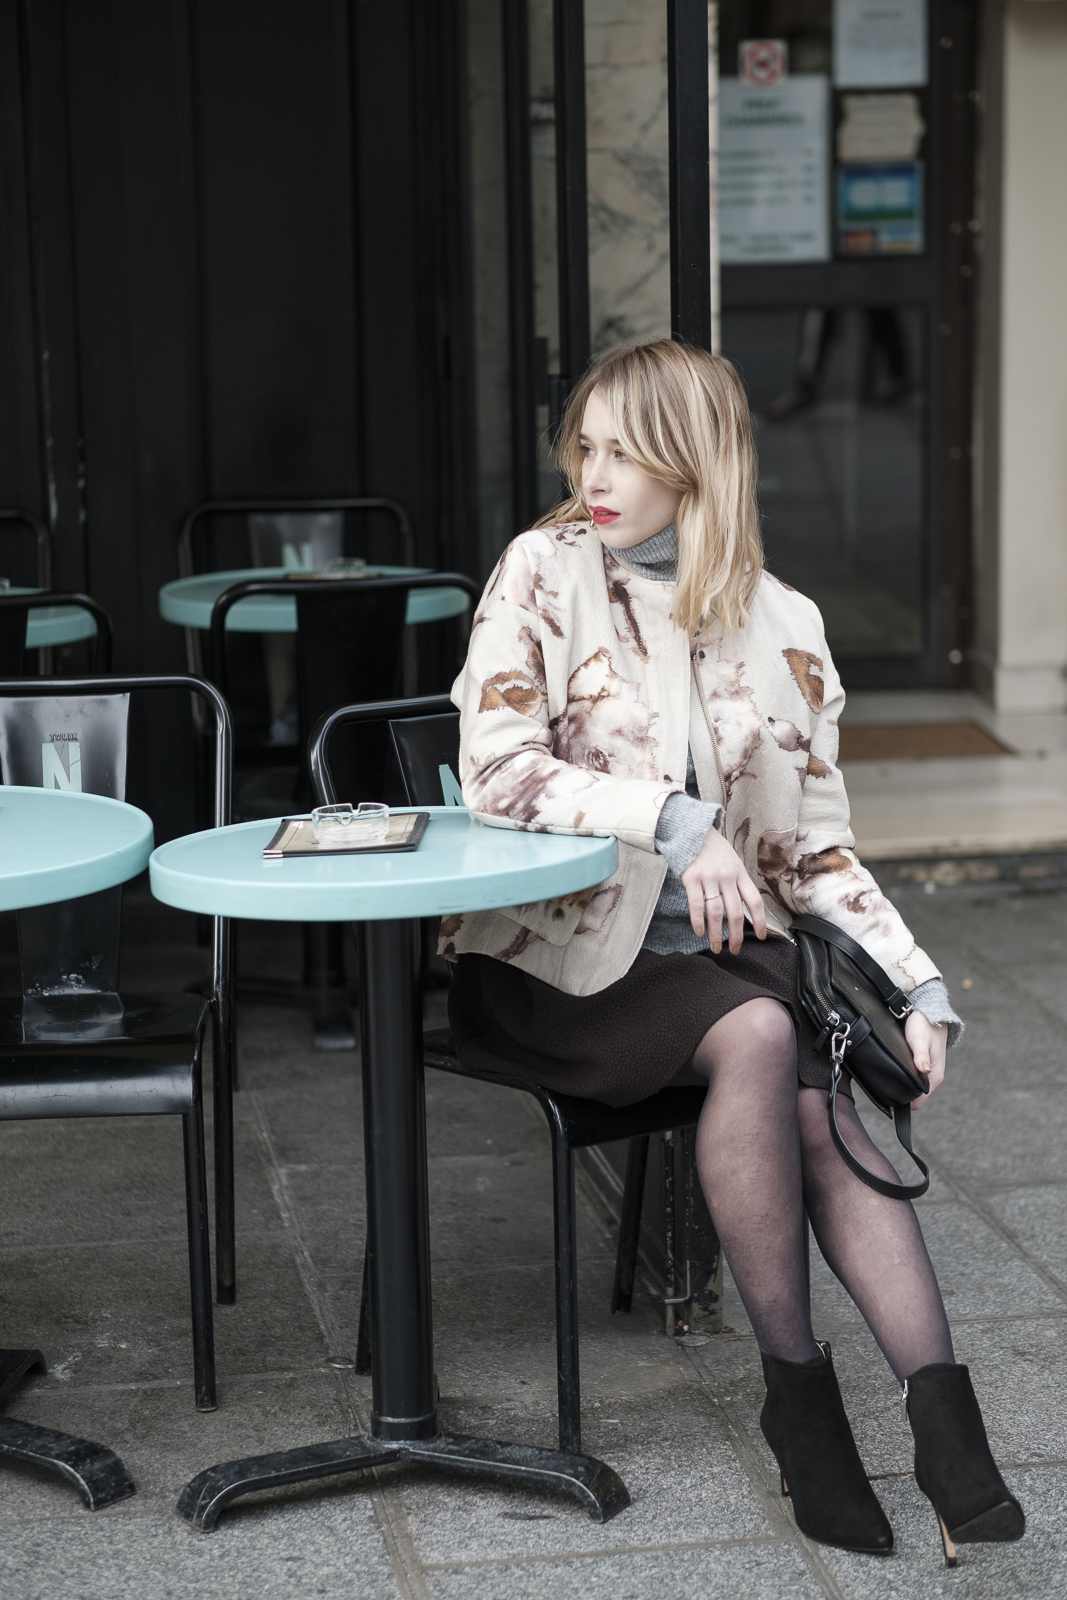 giseleisnerdy-cafe-paris-fashion-blogger-printed-bomber